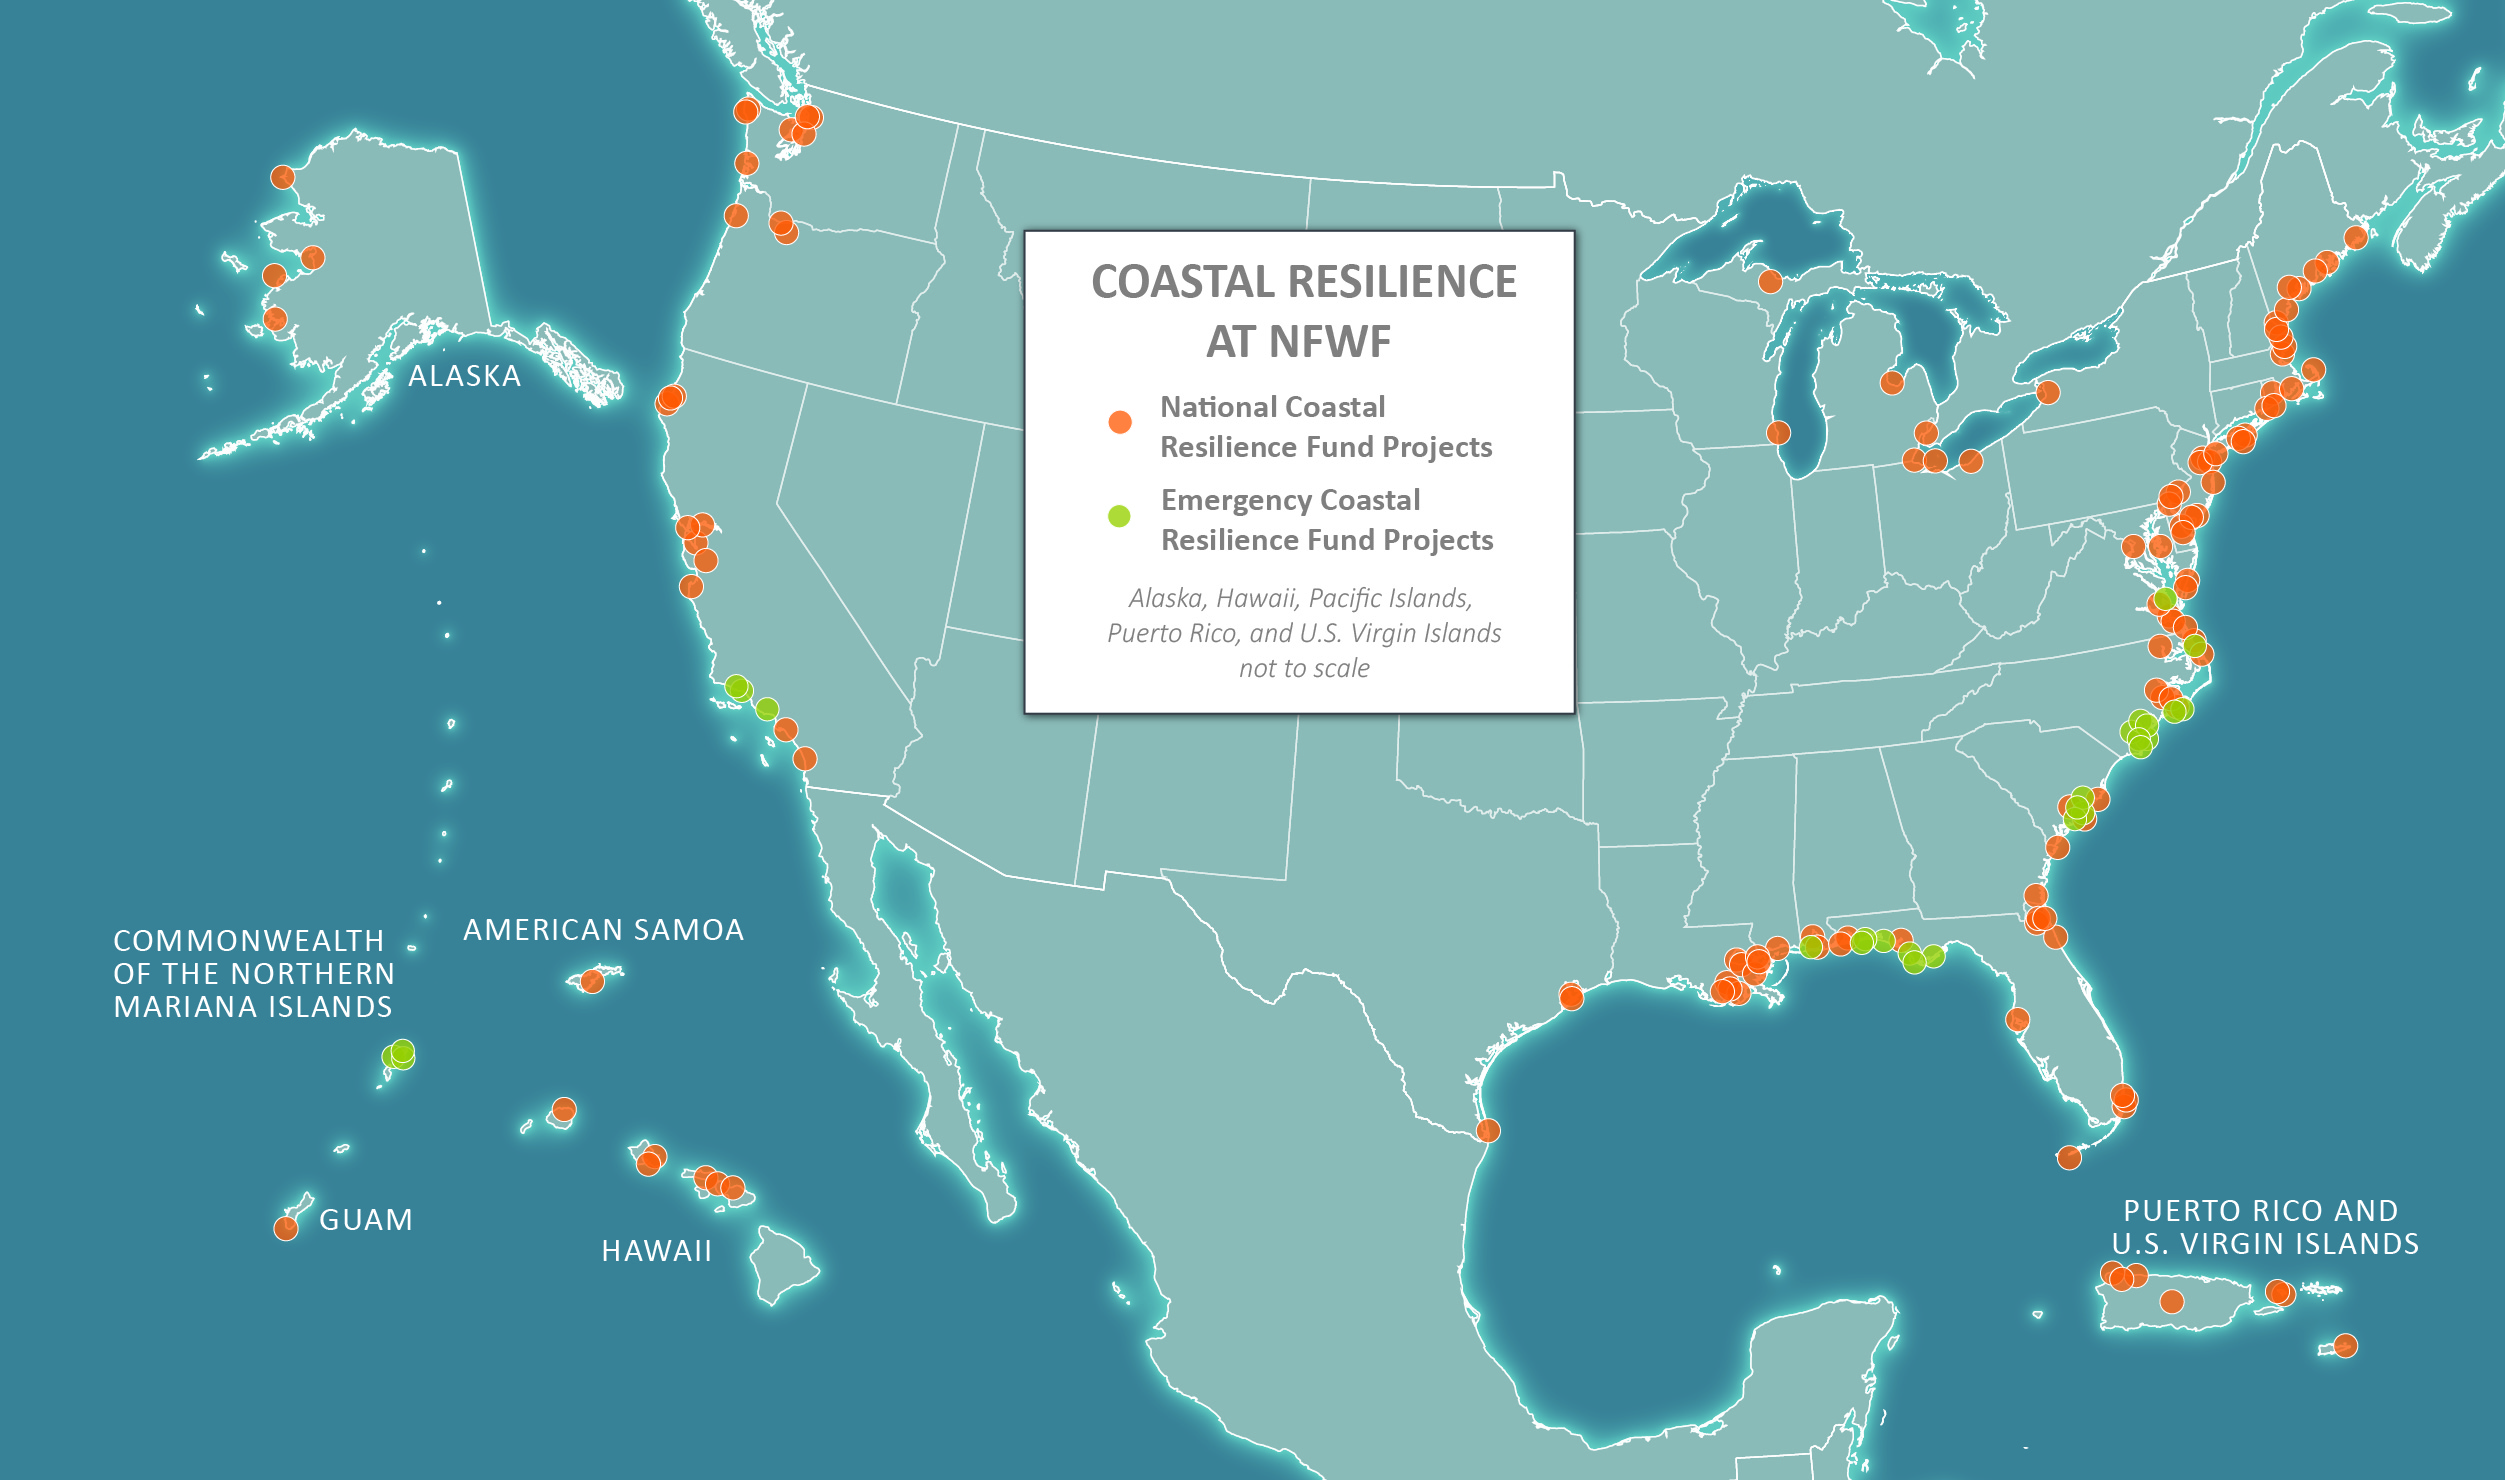 Coastal Resilience map